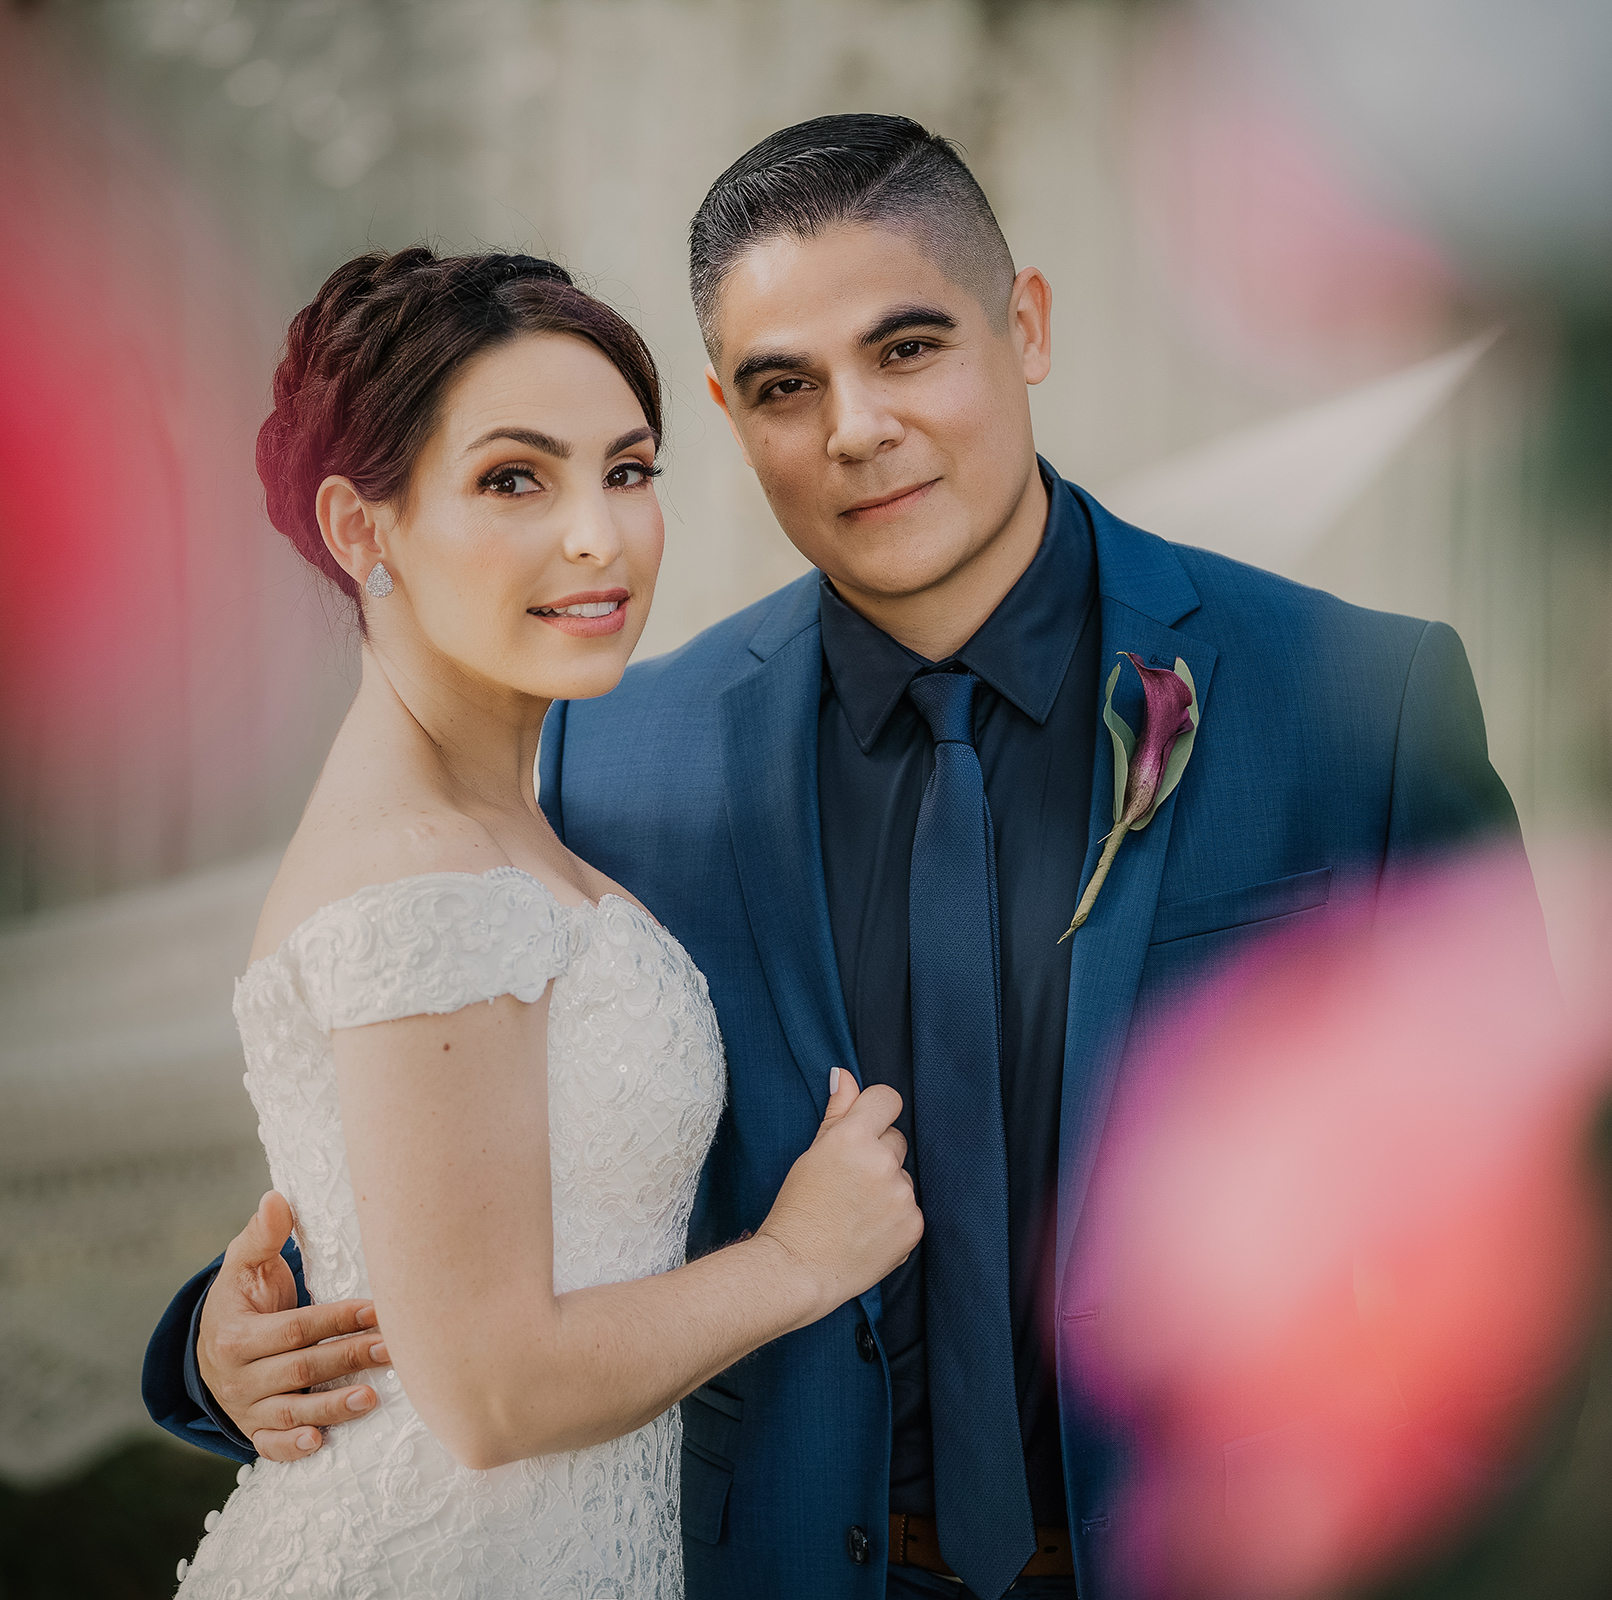 This is us on our wedding day. Doesn't she look amazing?!